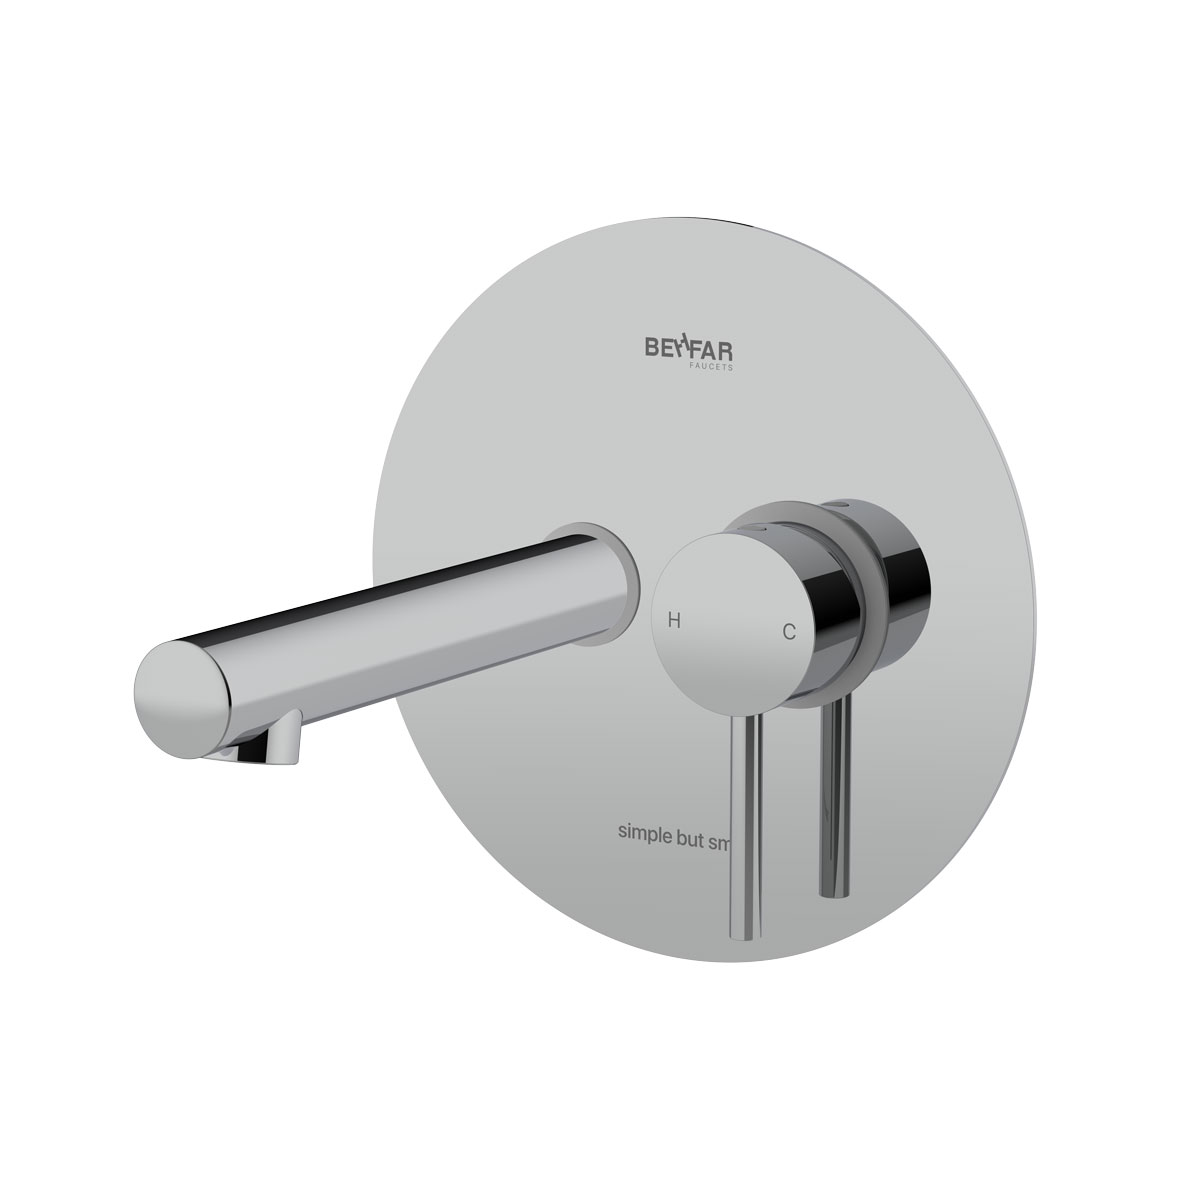 Behfar Shiny Chrome Basin Concealed With Ibox Plate C